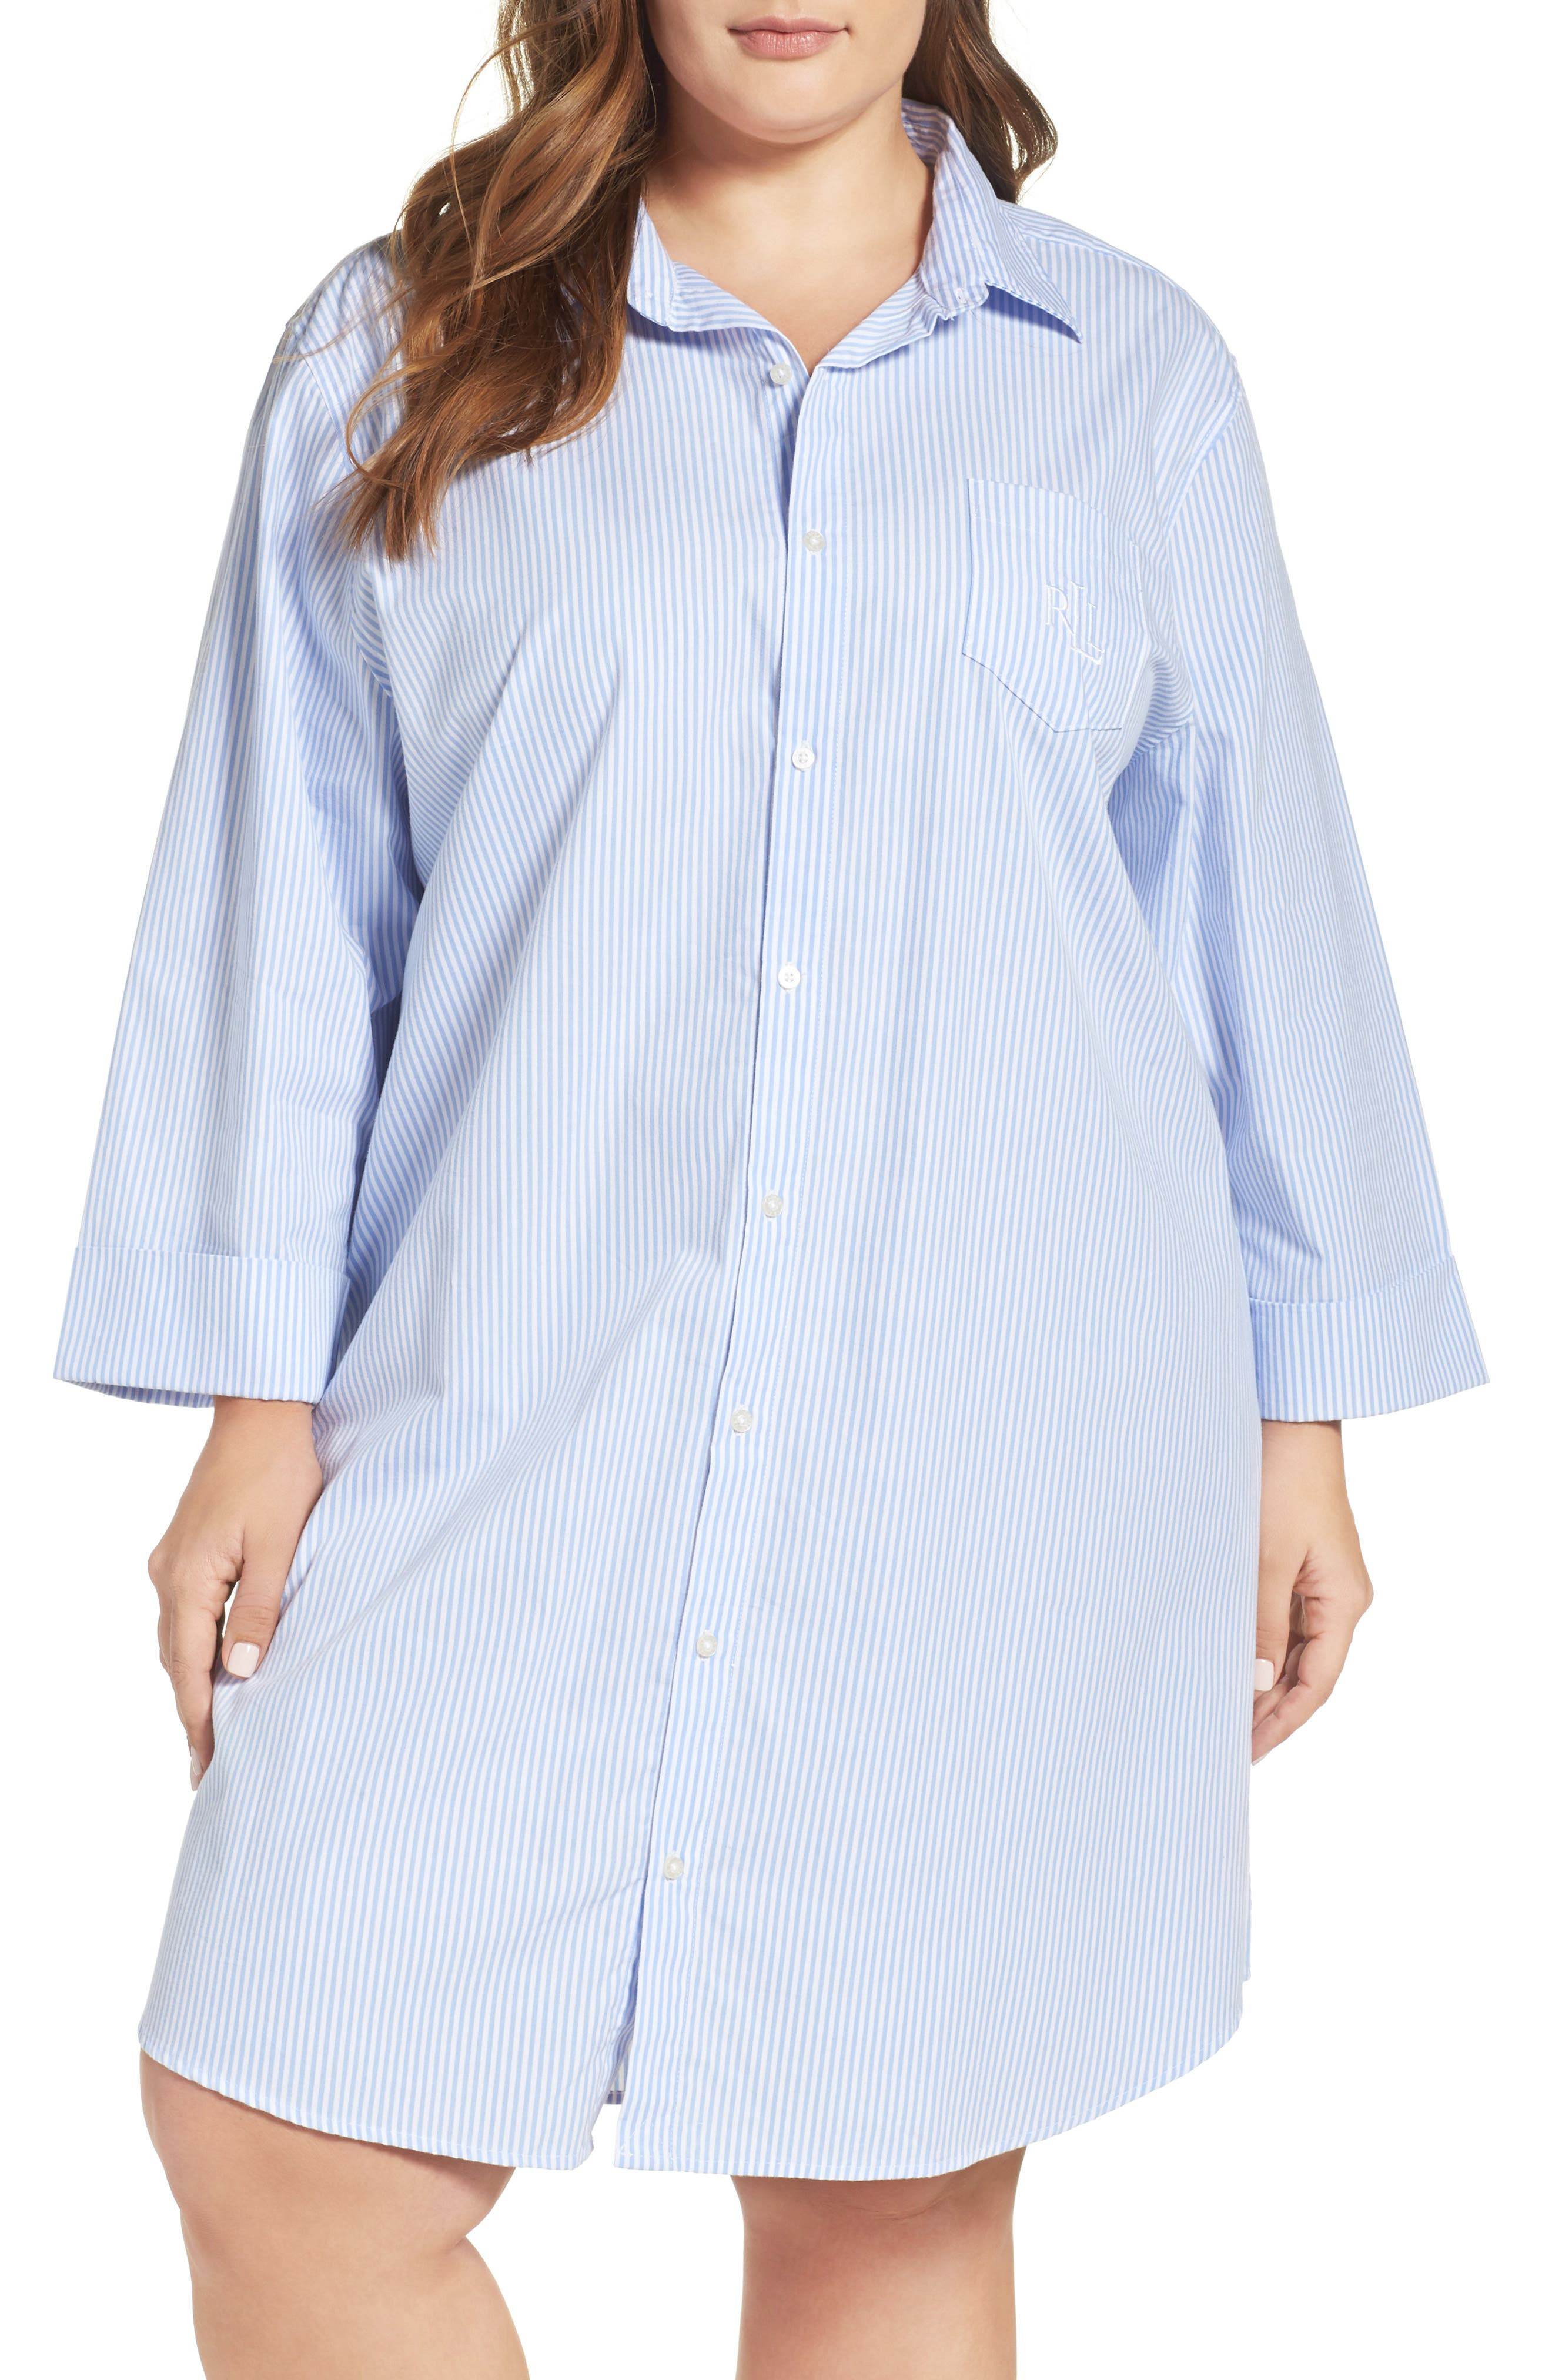 Sleep Shirt,                         Main,                         color, Stripe French Blue/ White